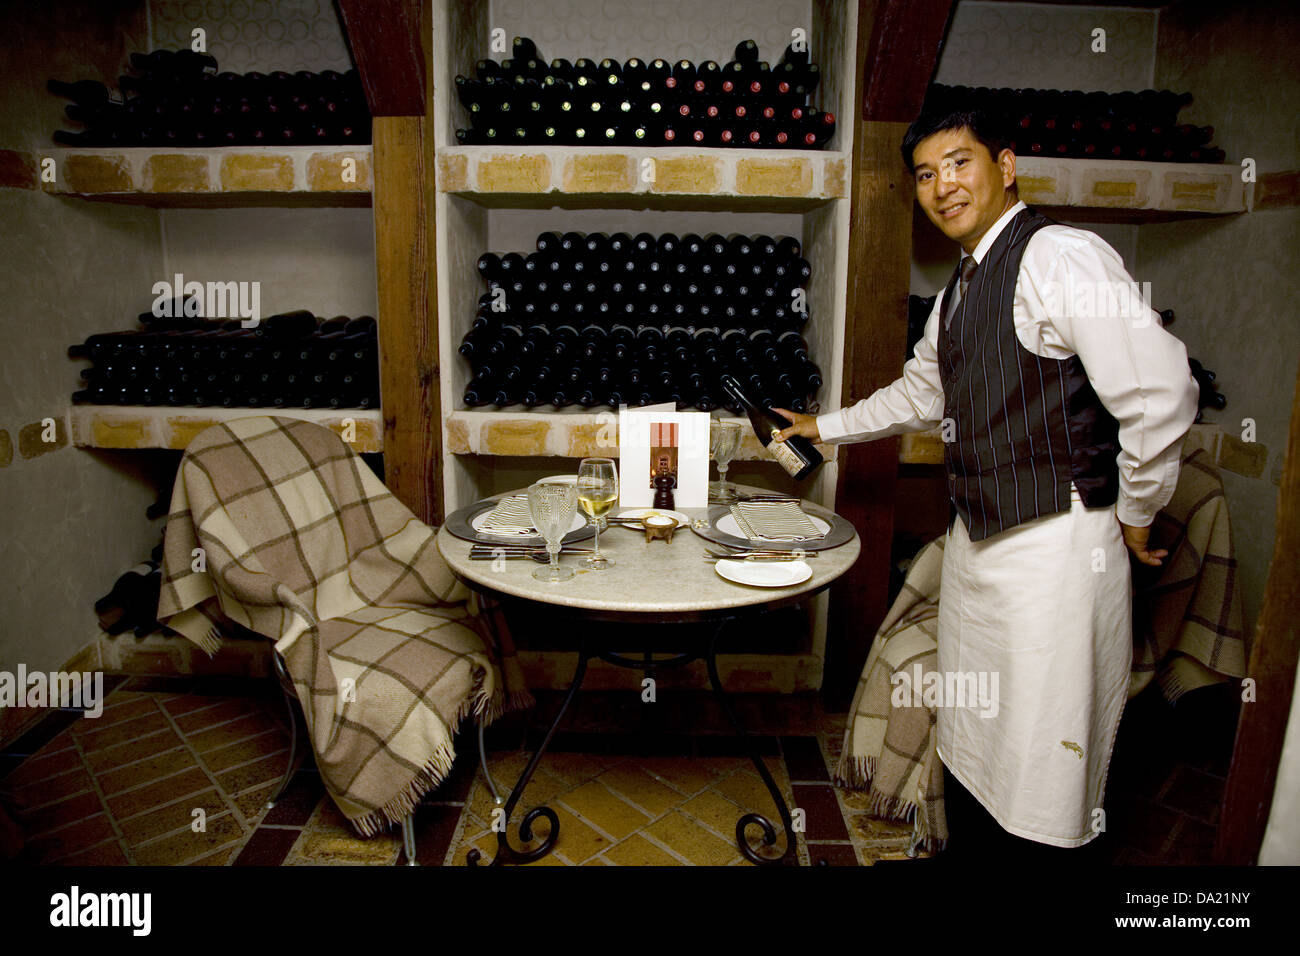 There are a number of unique dining venues, including this one in the wine cellar, at Huka Lodge, Taupo, New Zealand. - Stock Image